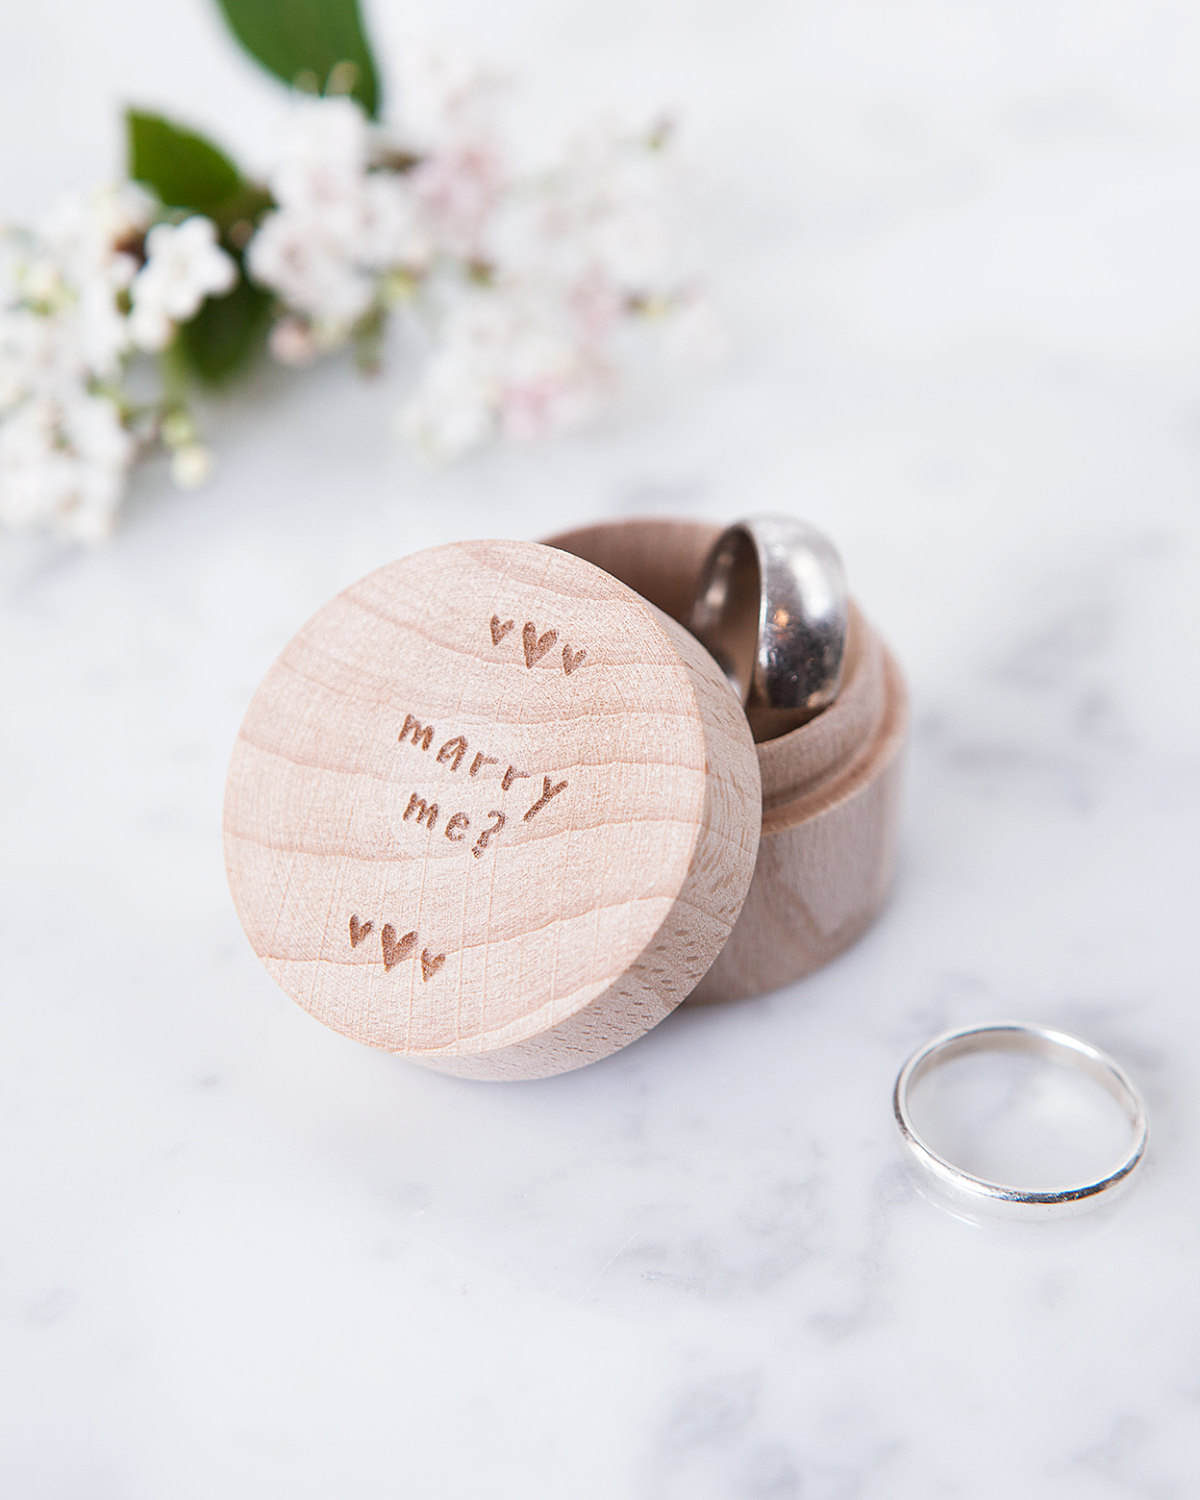 Marry Me Engraved Ring Box